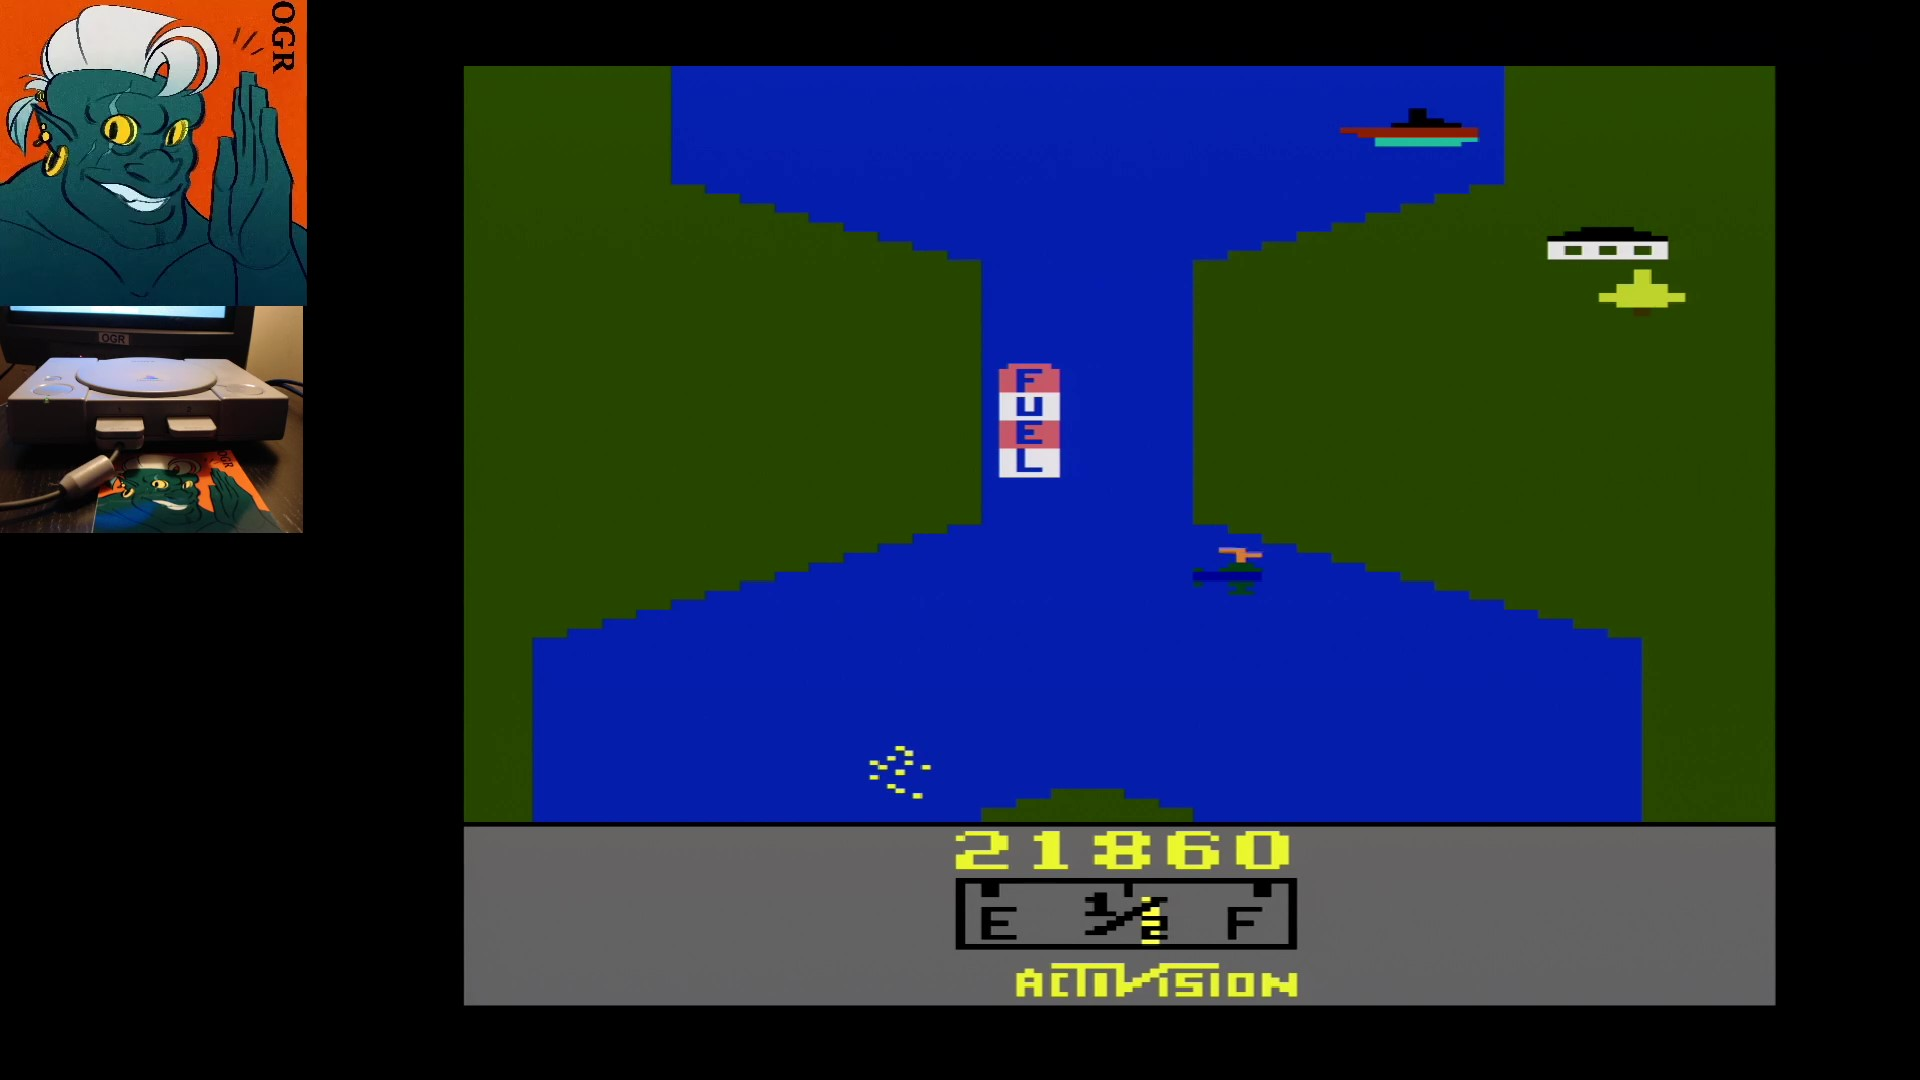 Activision Classics: River Raid [Game 1] 21,860 points